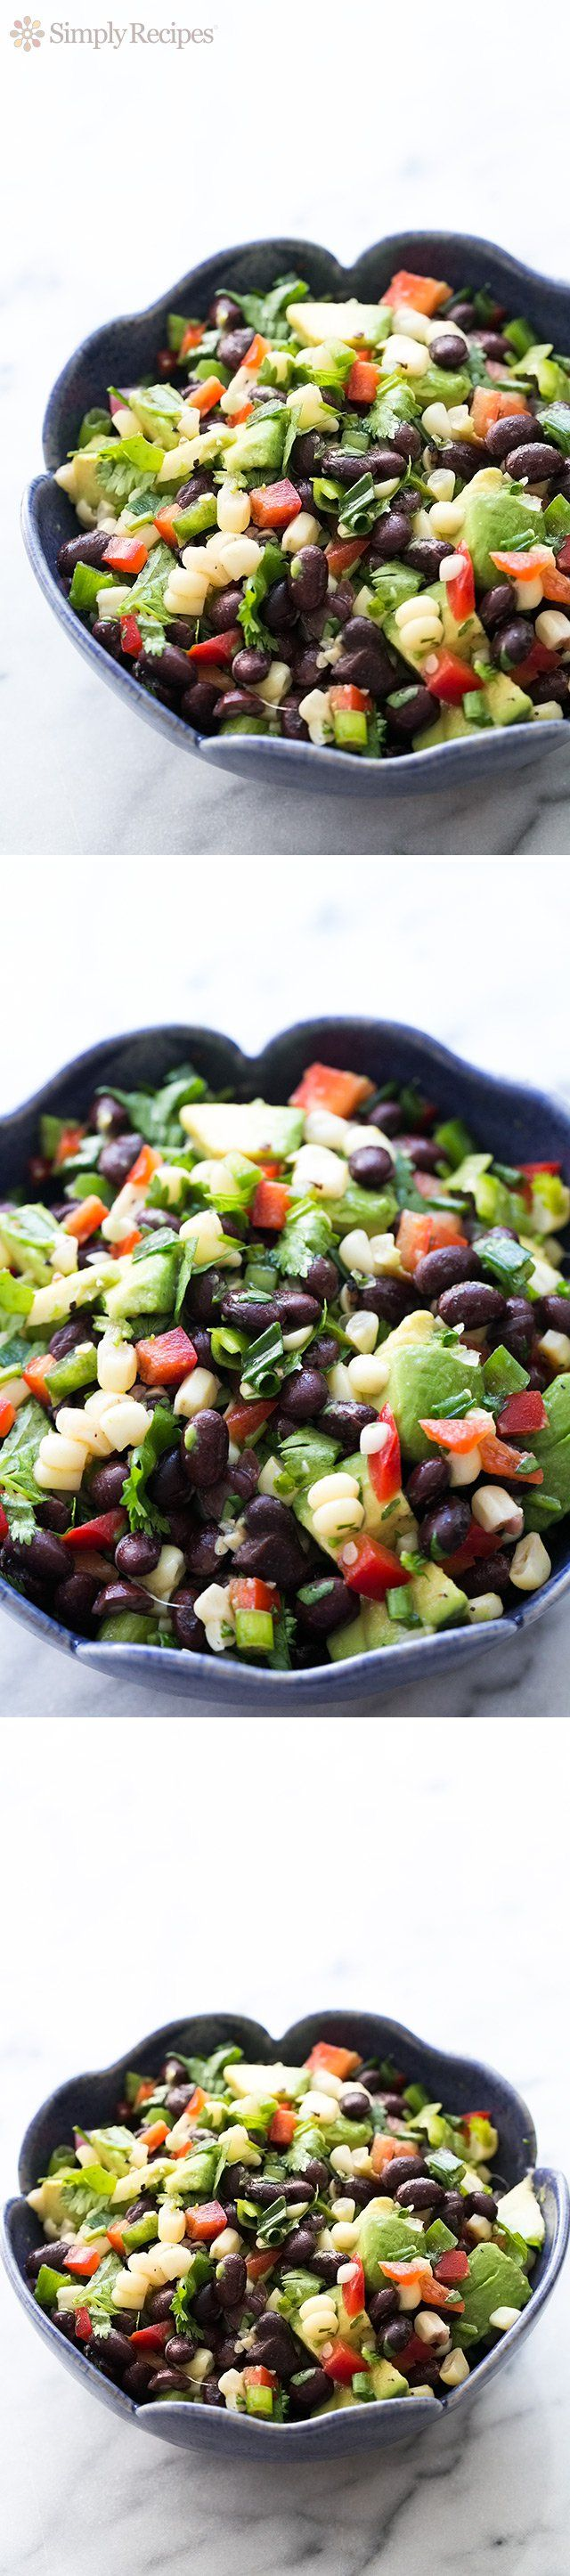 Black Bean Salad ~ Perfect for a summer picnic or potluck! Red bell peppers, jalapeños, avocado, black beans and corn combined to give this salad its kick and fresh flavors. On SimplyRecipes.com